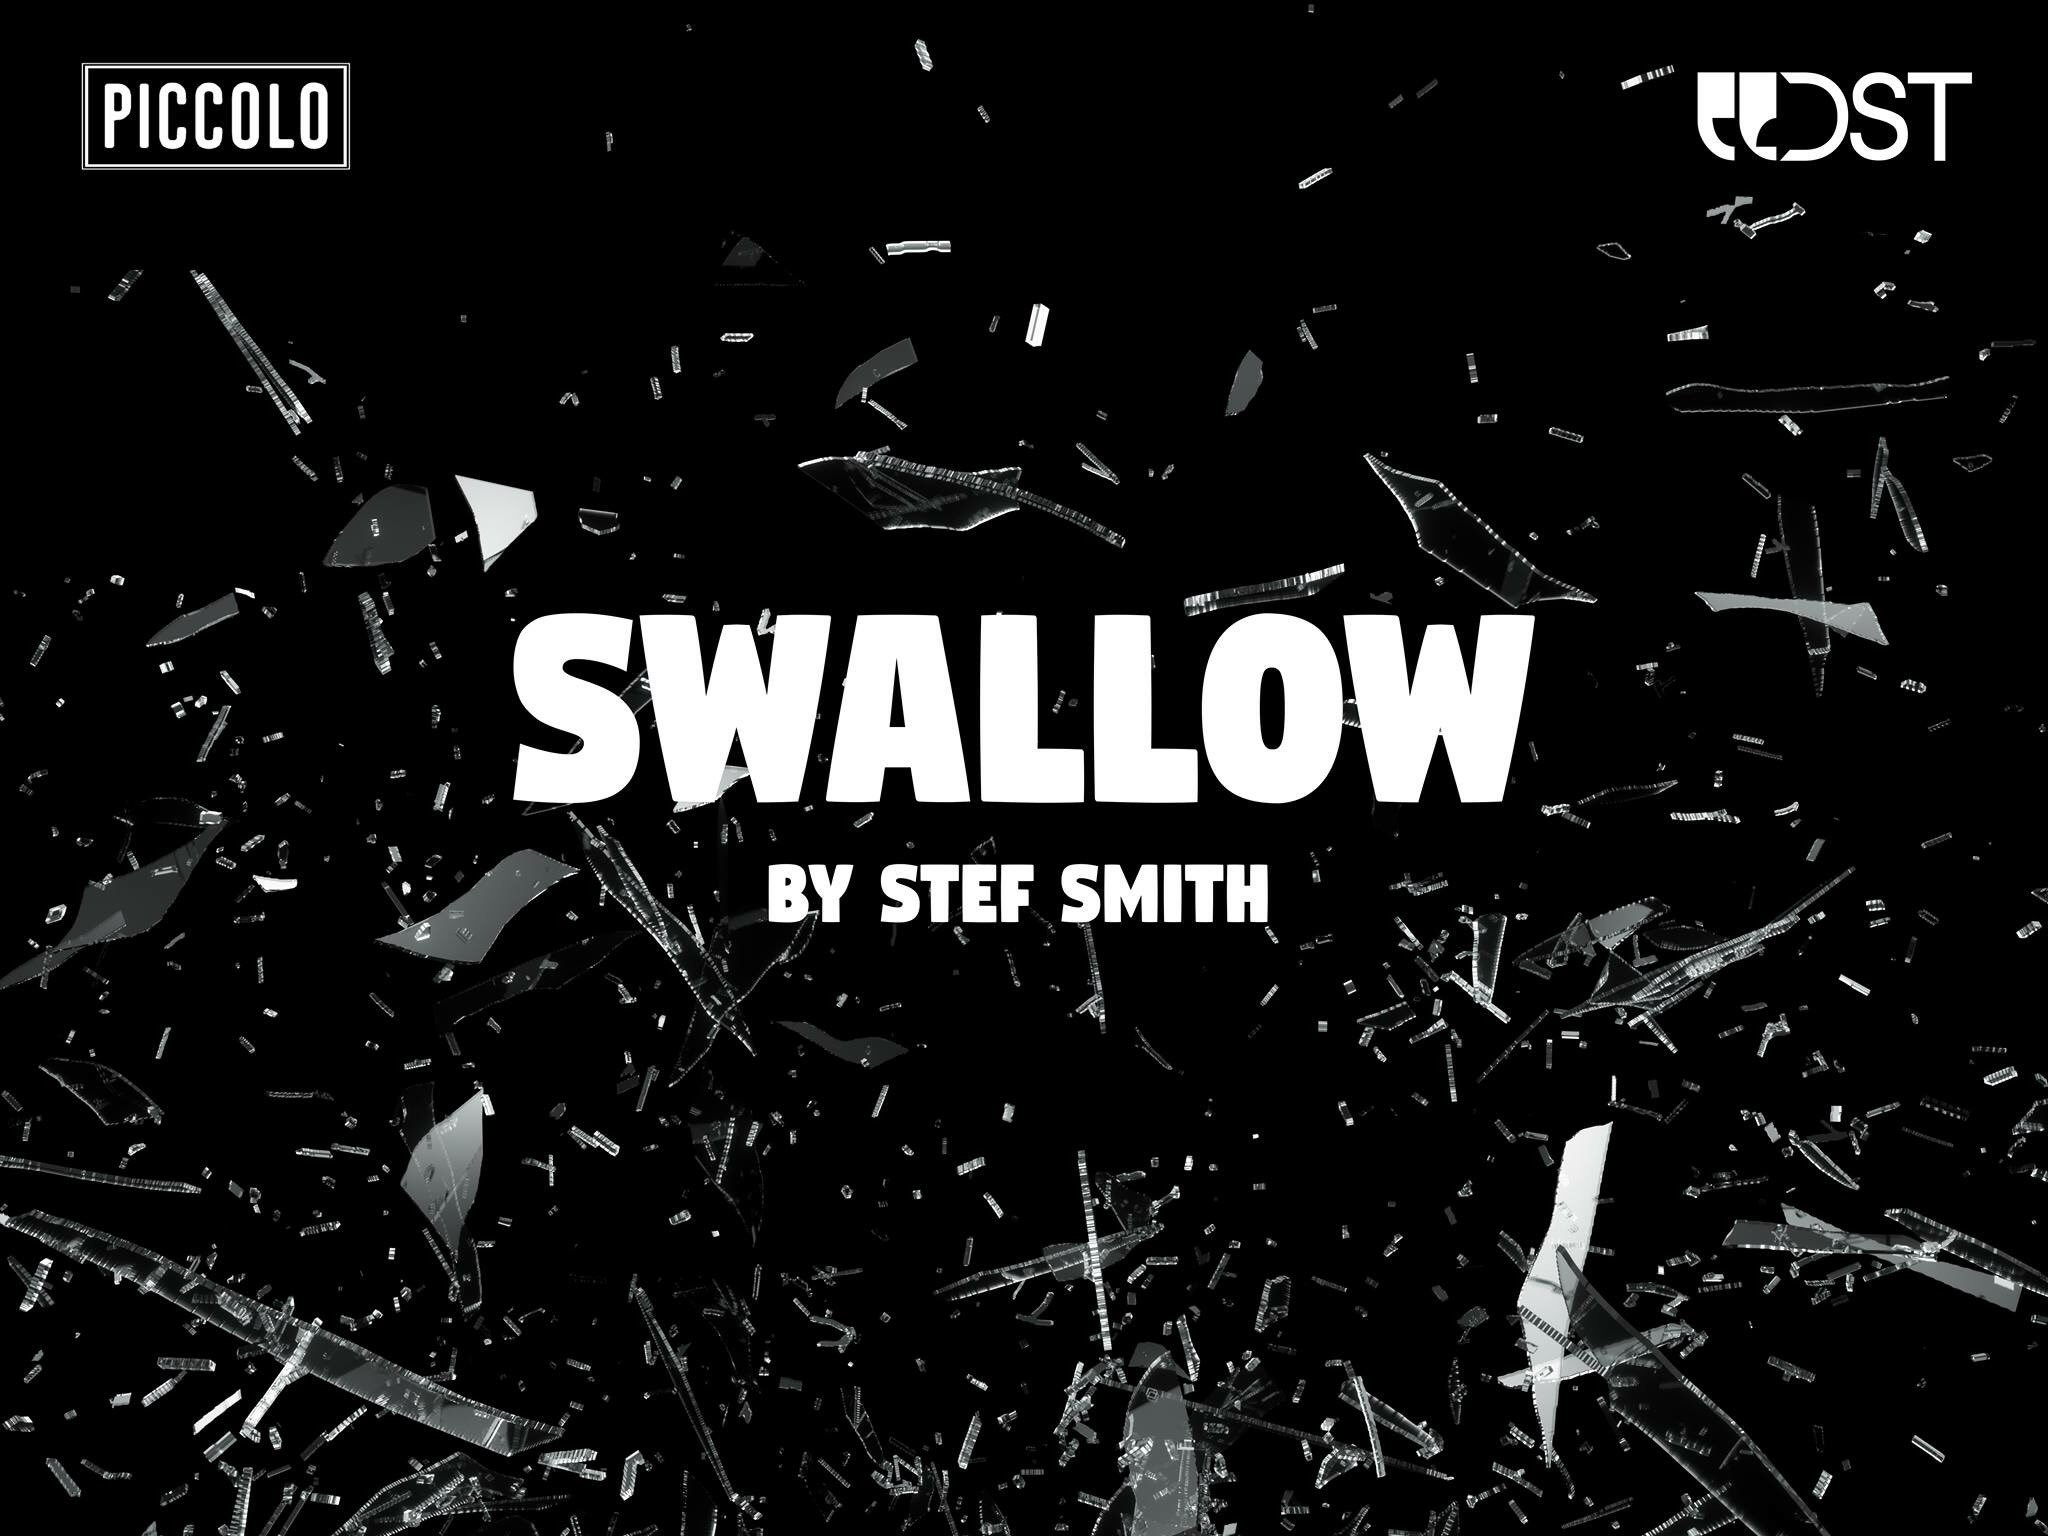 And thank you also to @theatrepiccolo for entering 'Swallow', entry no.72 for #NSDF17 https://t.co/H7bHNQb0RW